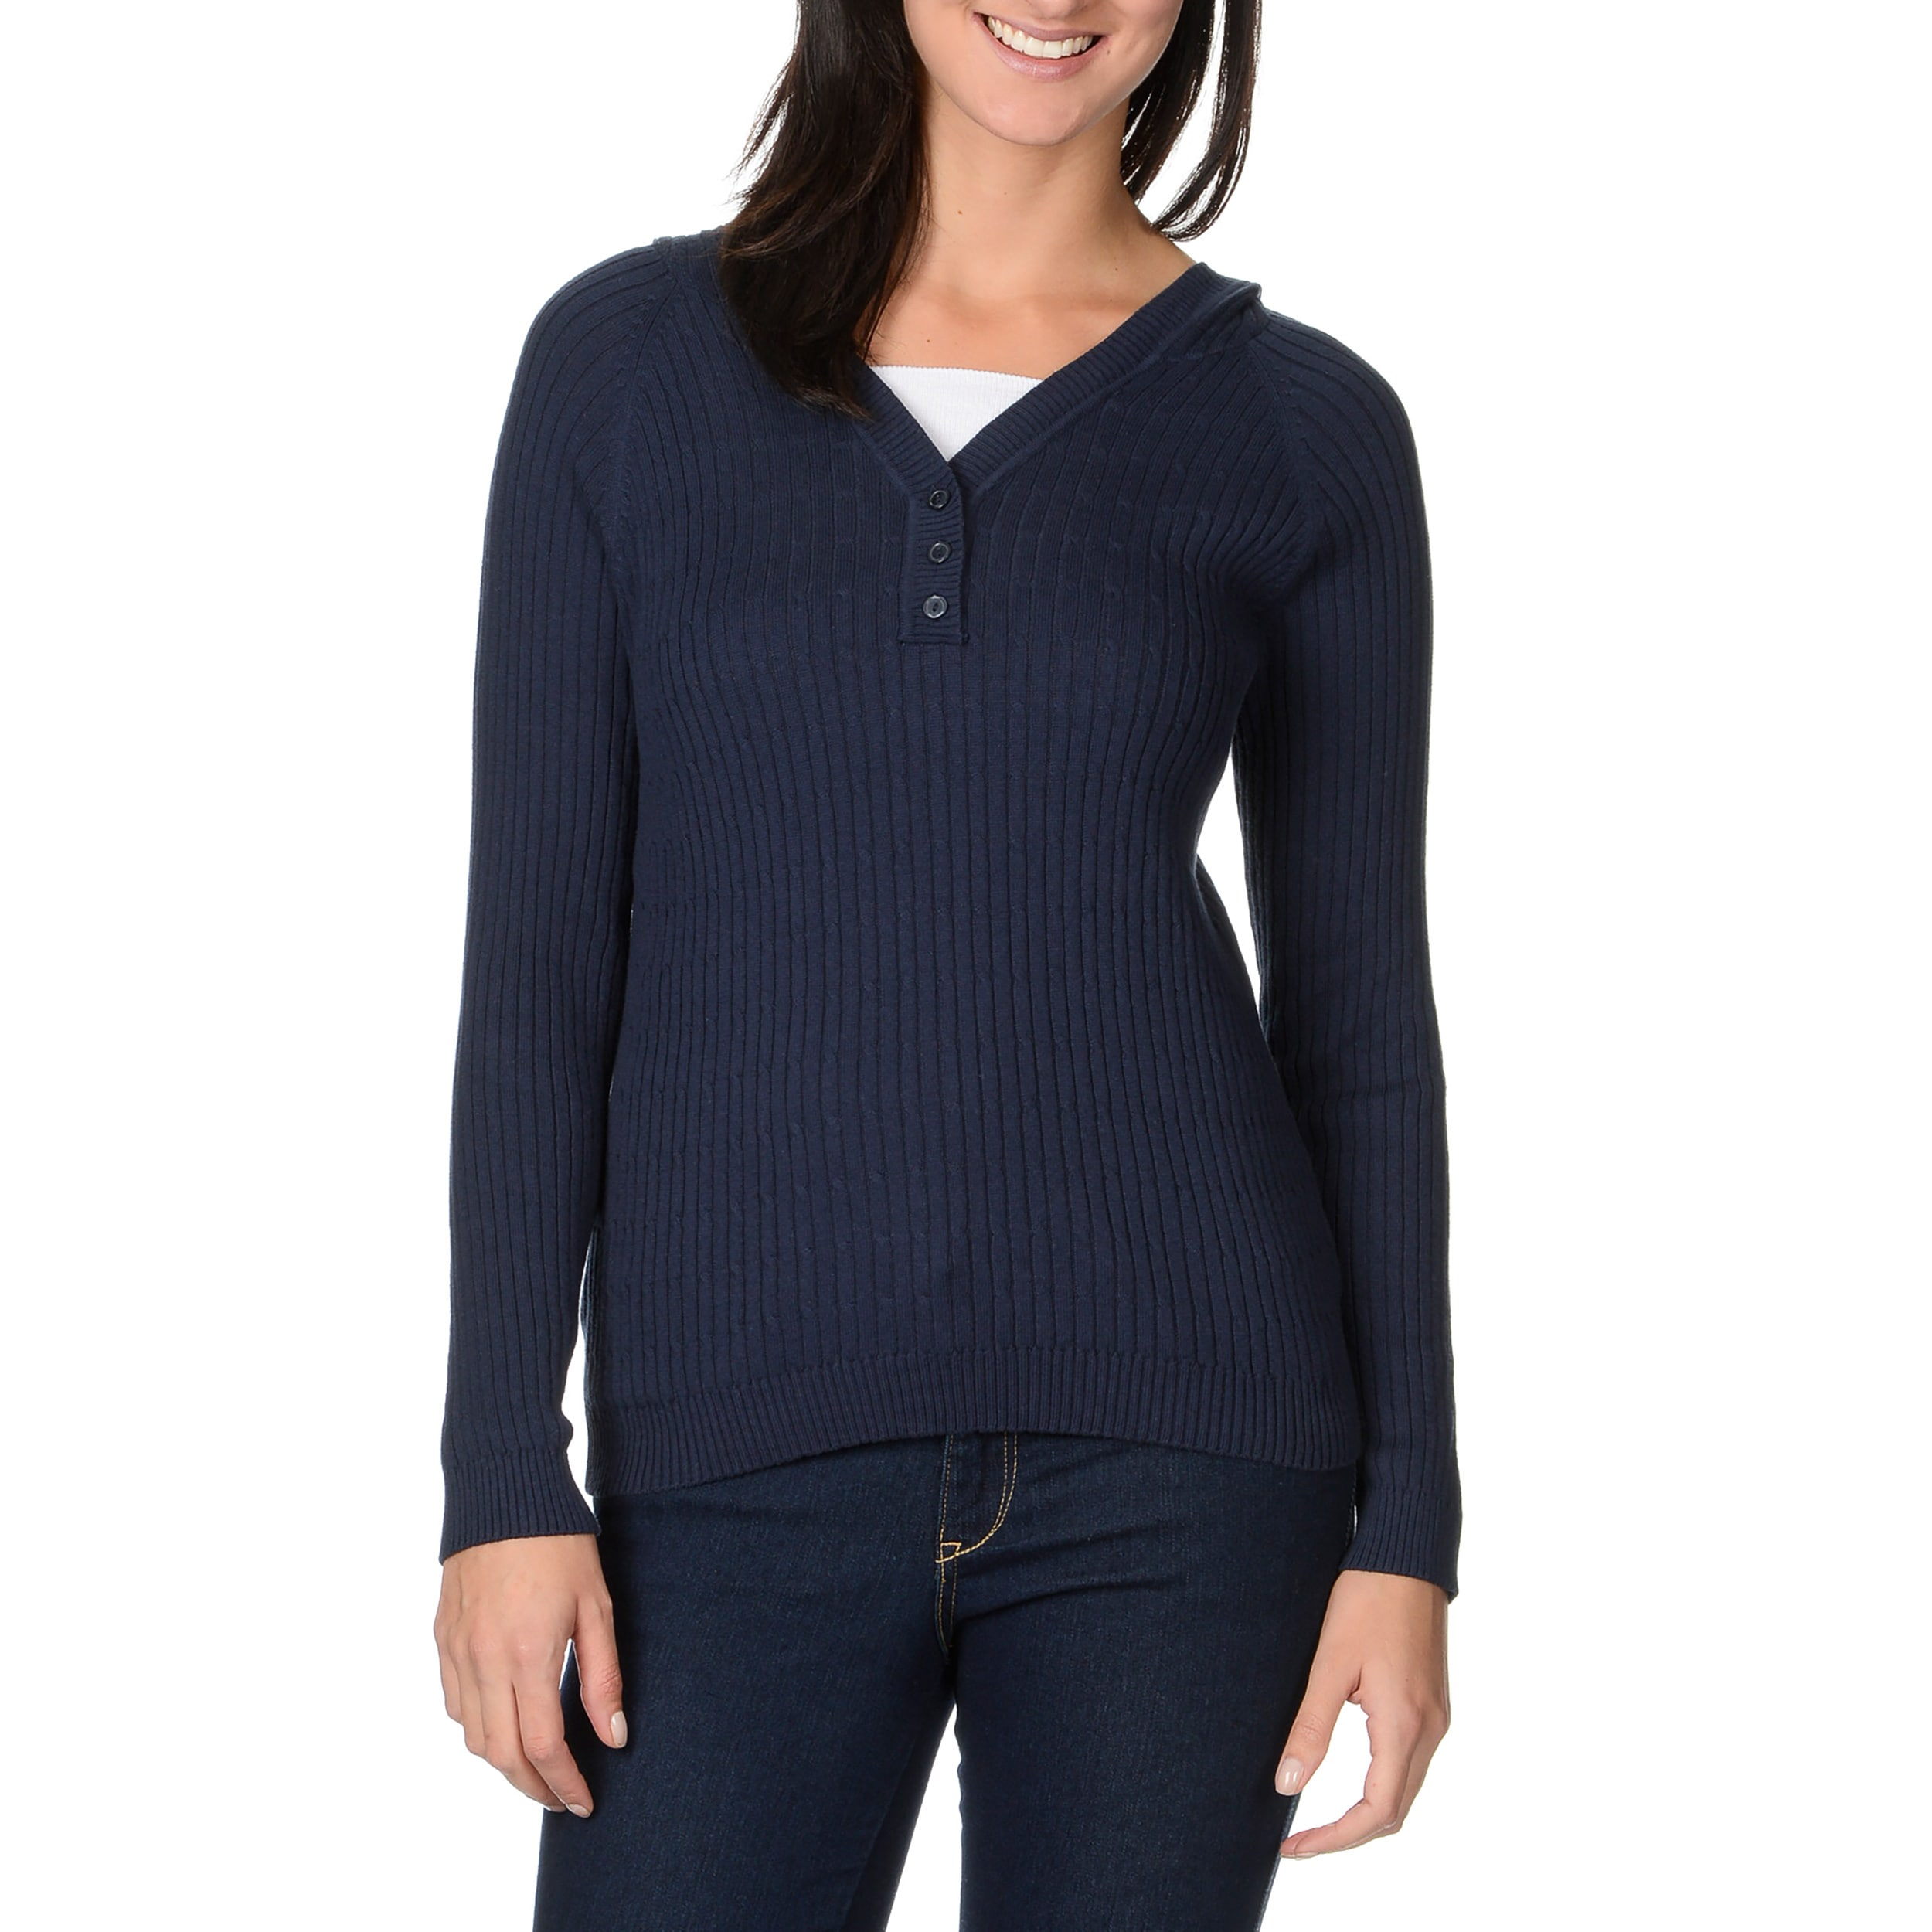 Pierri Women's Hooded 3-button Cabled Sweater